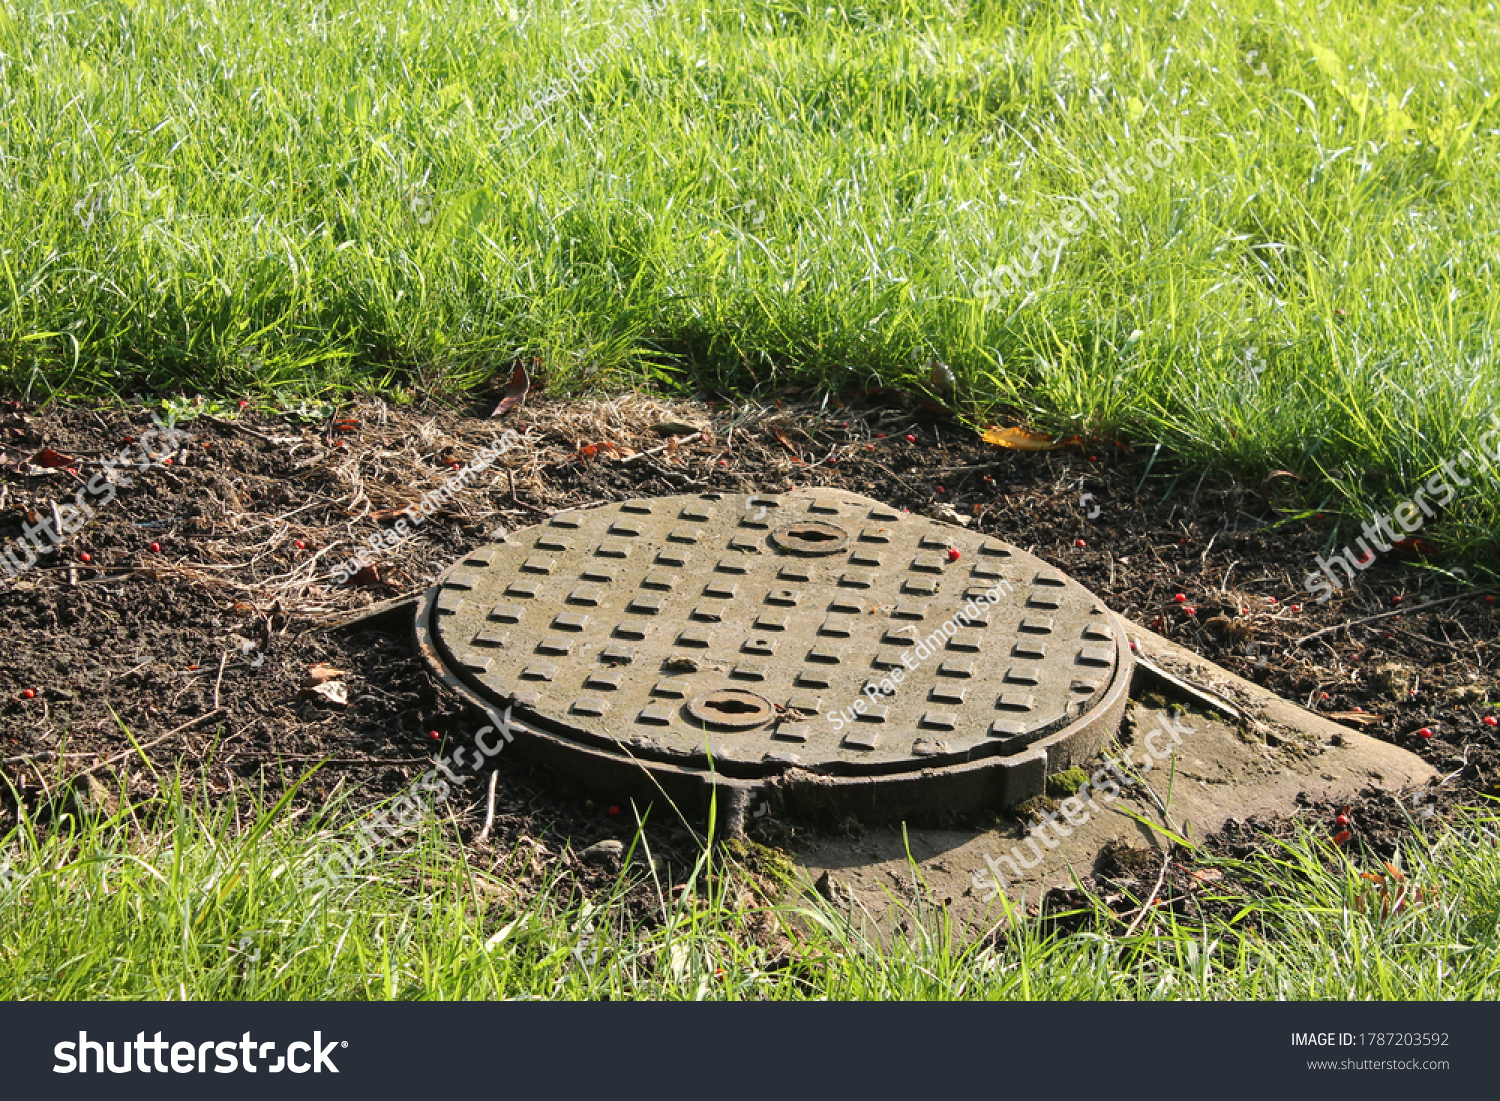 Round metal manhole cover surrounded by grass